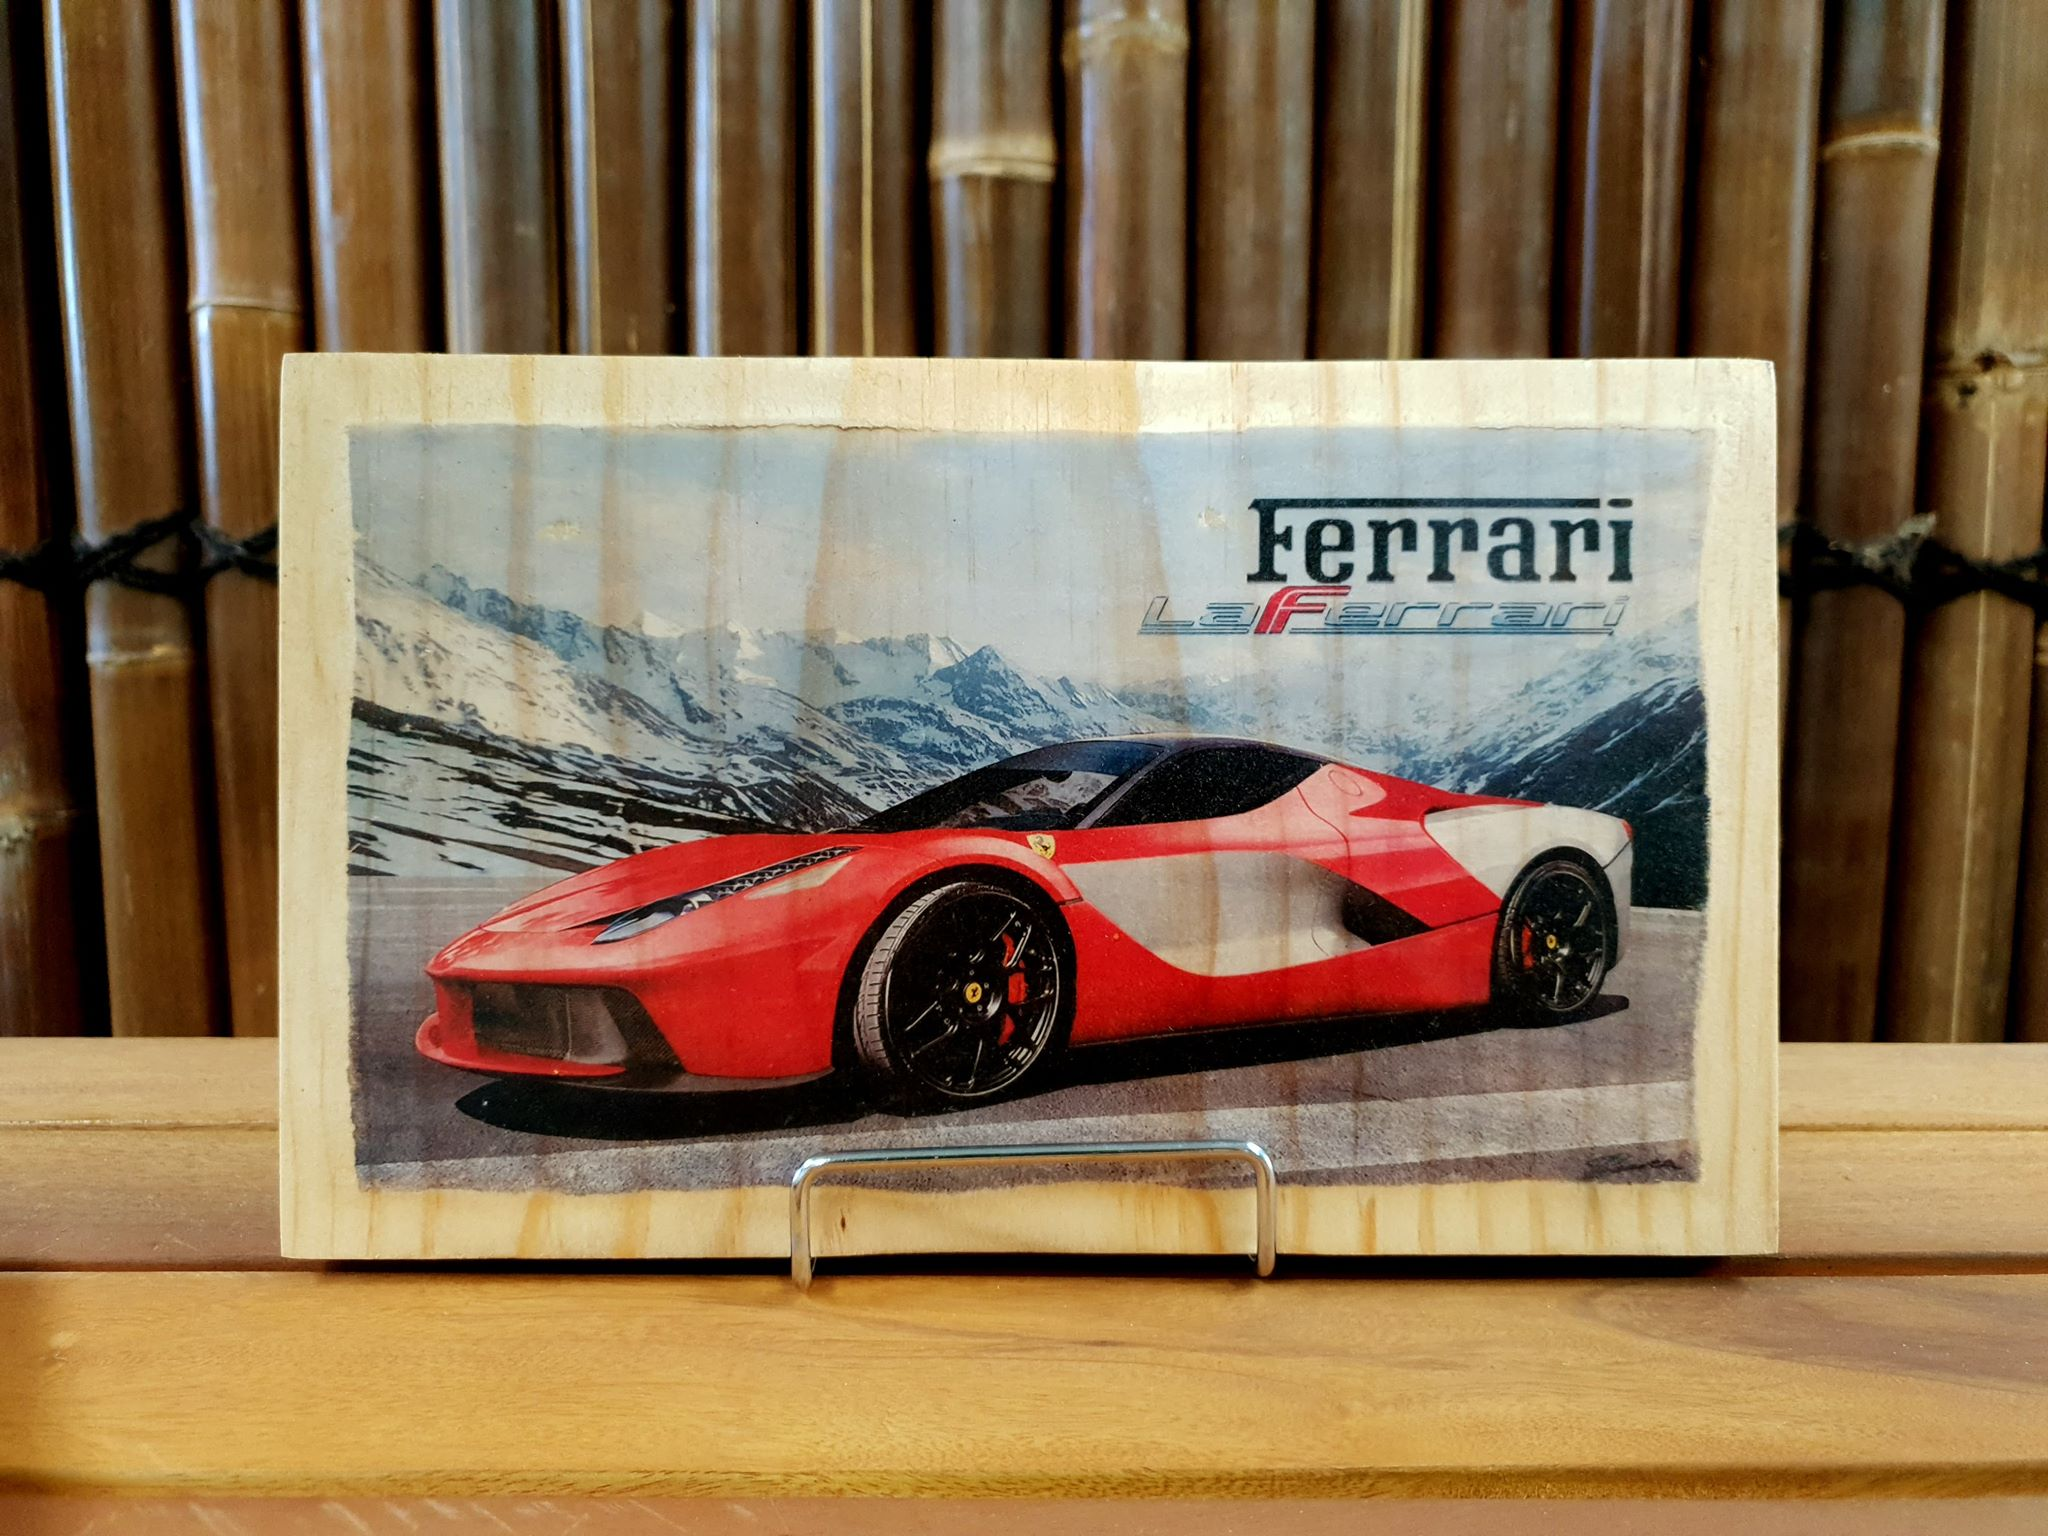 Ferrari La Ferrari handmade wood mounted car print